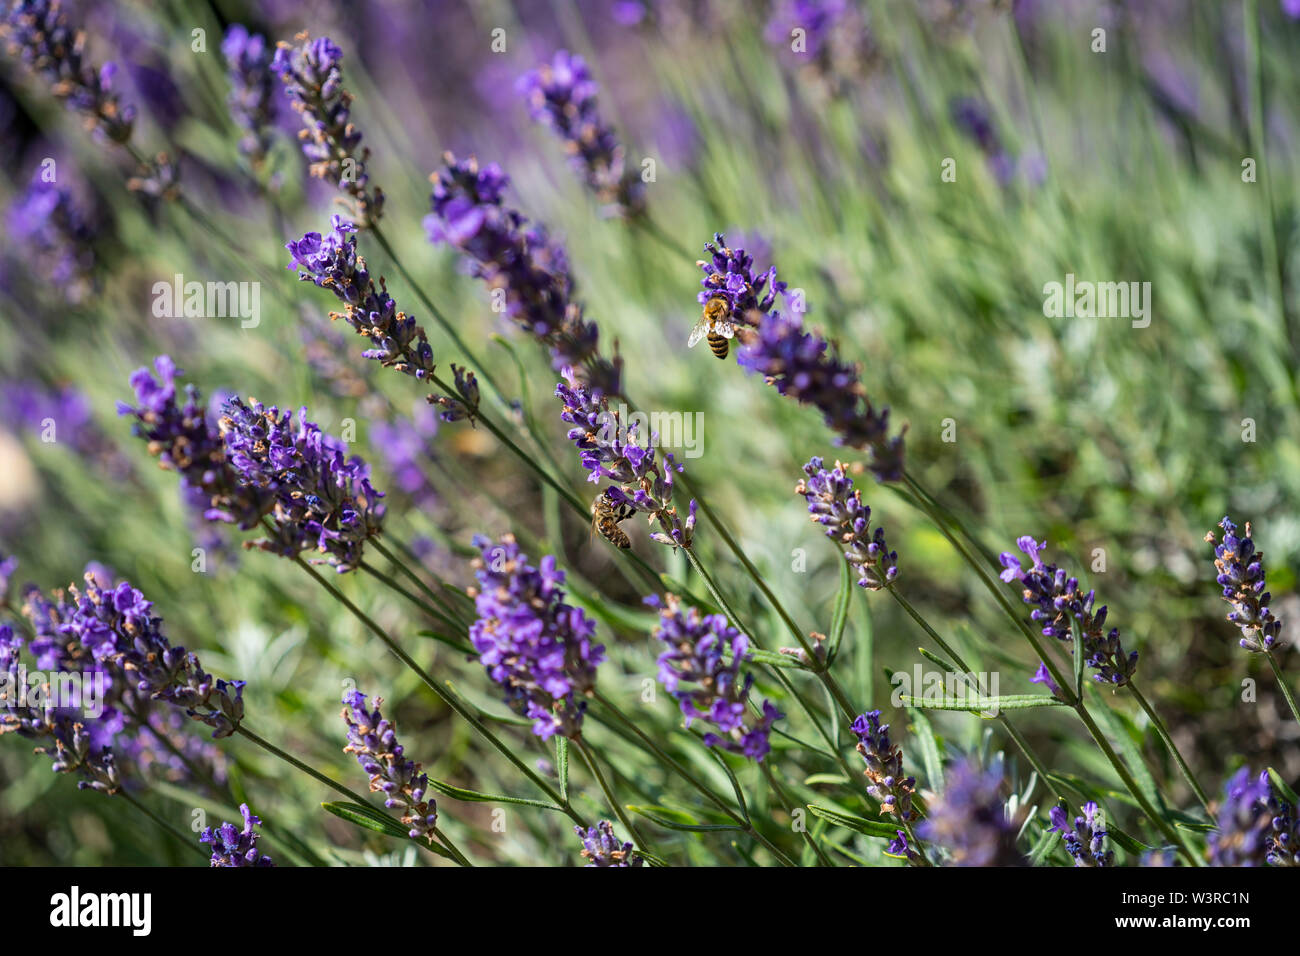 close up of bees collecting honey on lavender ; duftender Lavendel mit Bienen; Nahaufnahme; Lavandula angustifolia - Stock Image